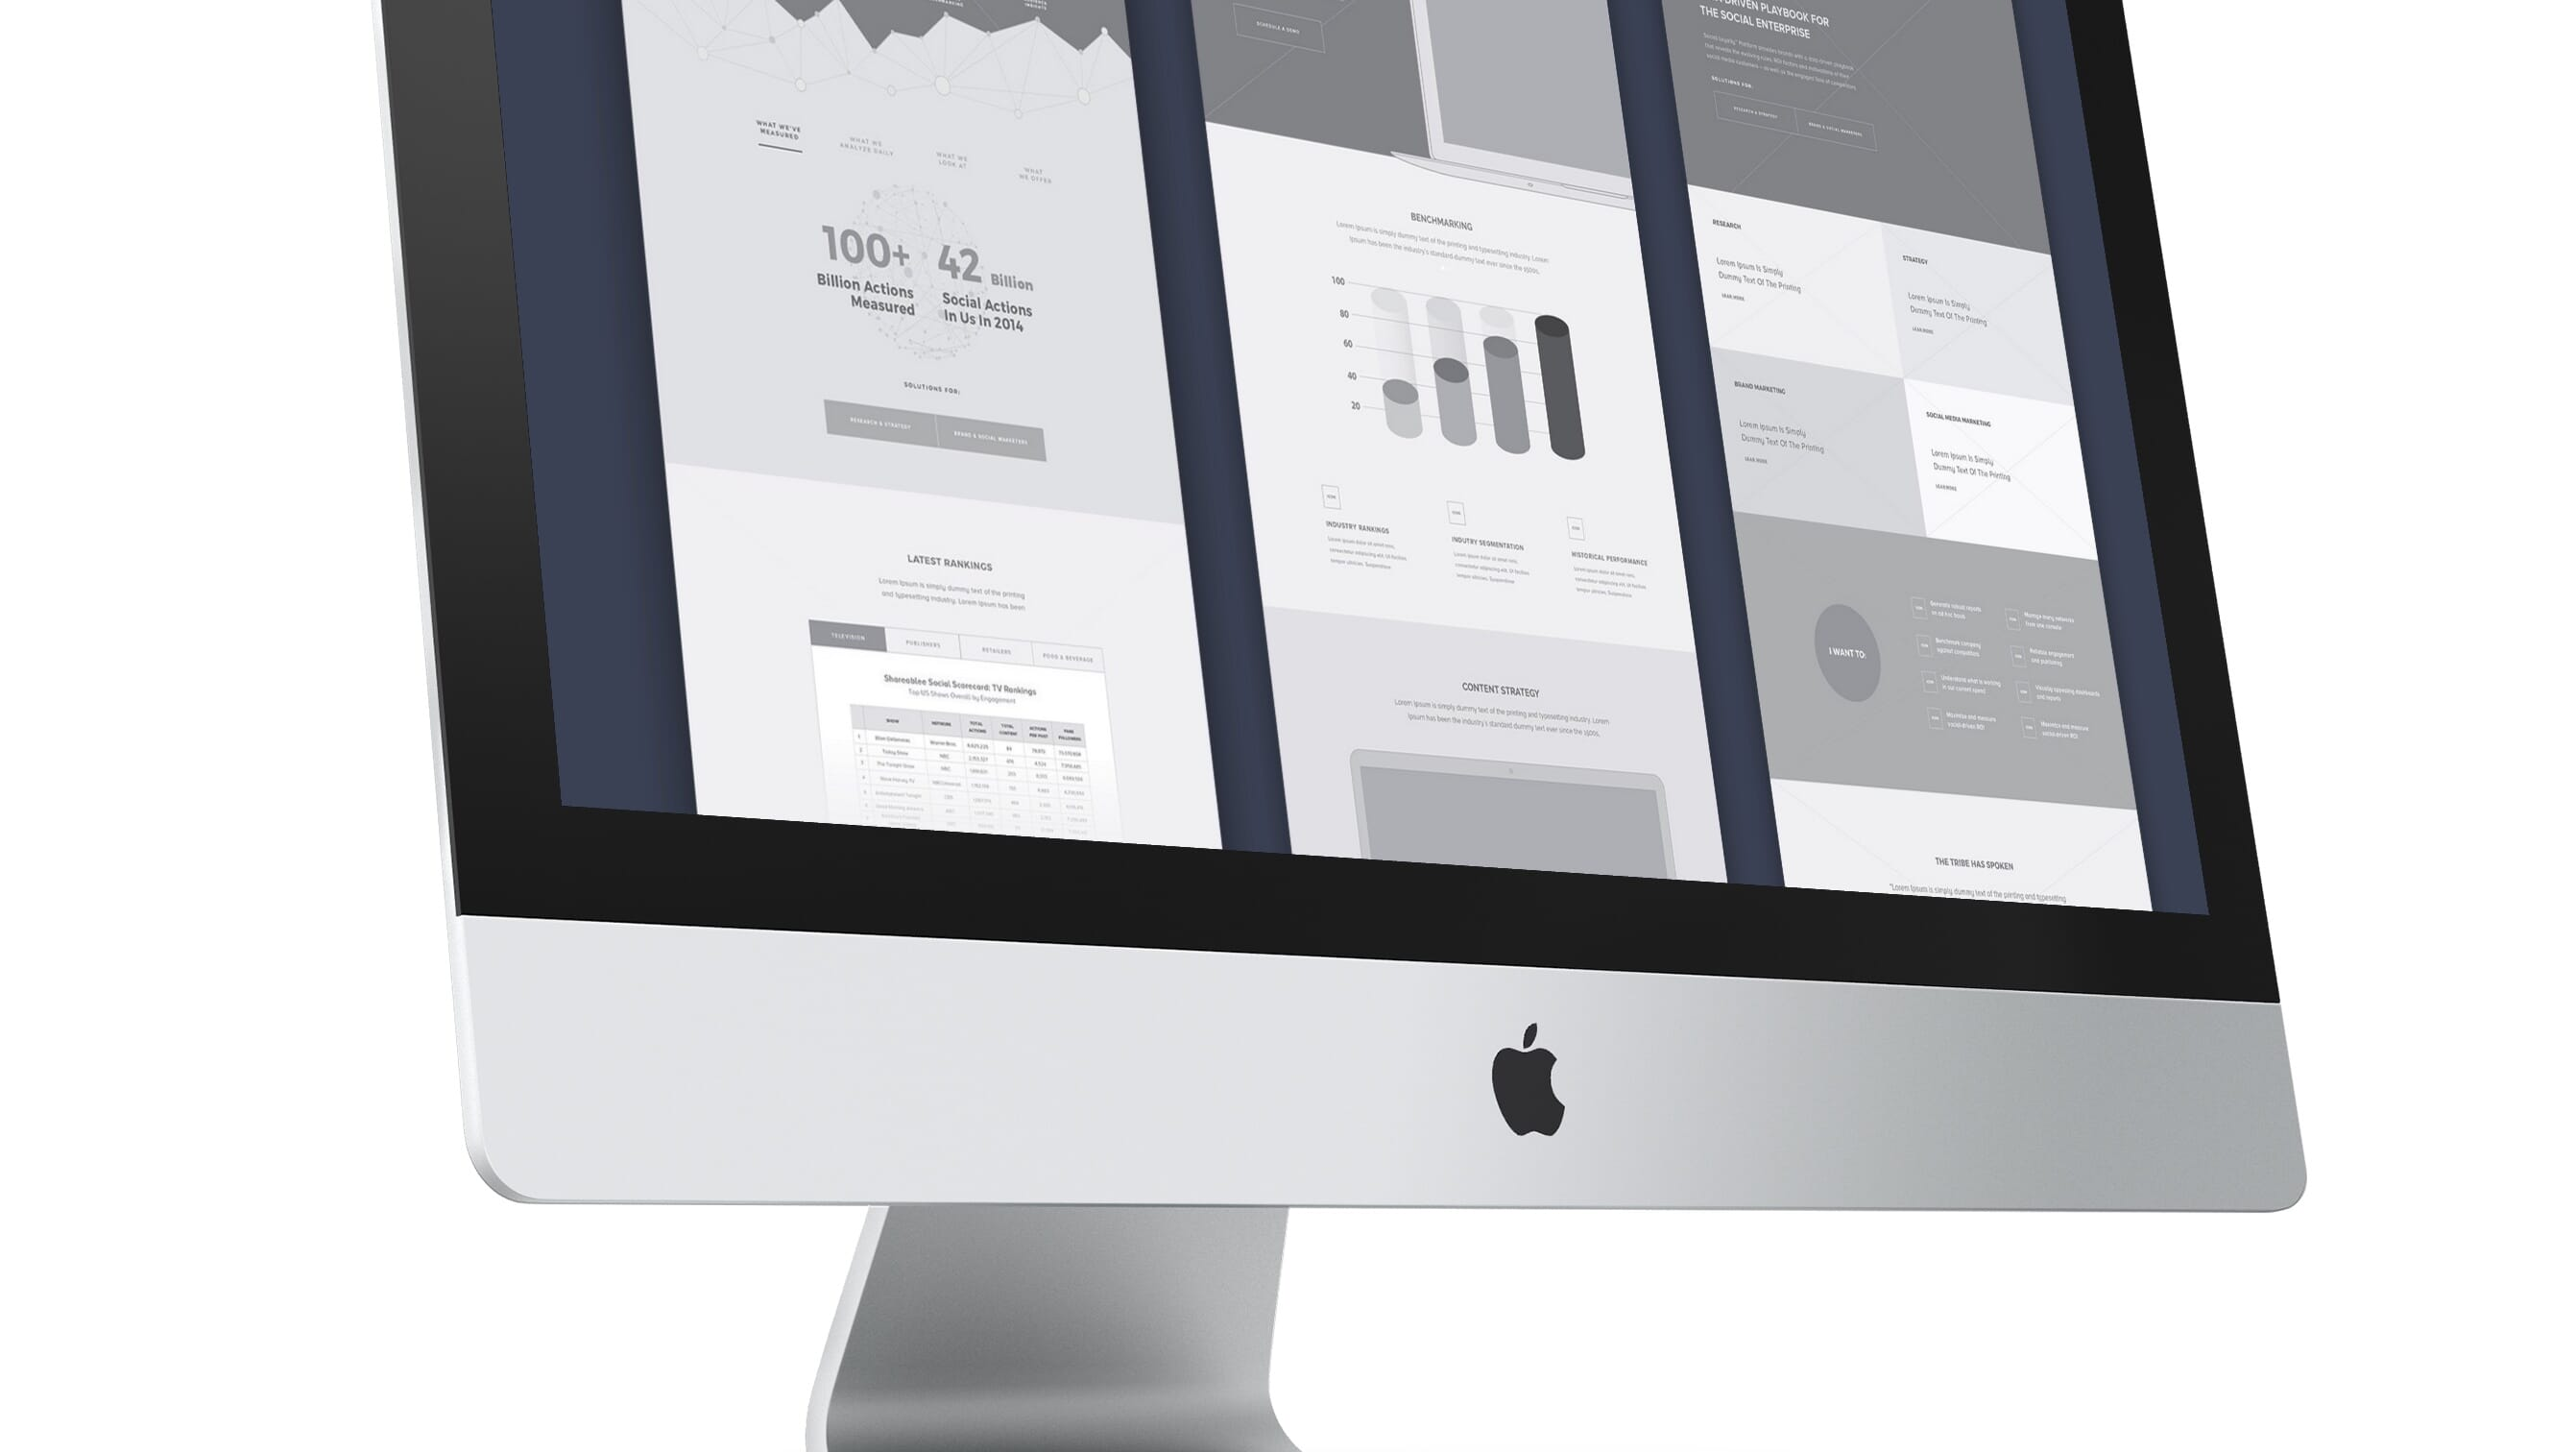 iMac showing wireframes